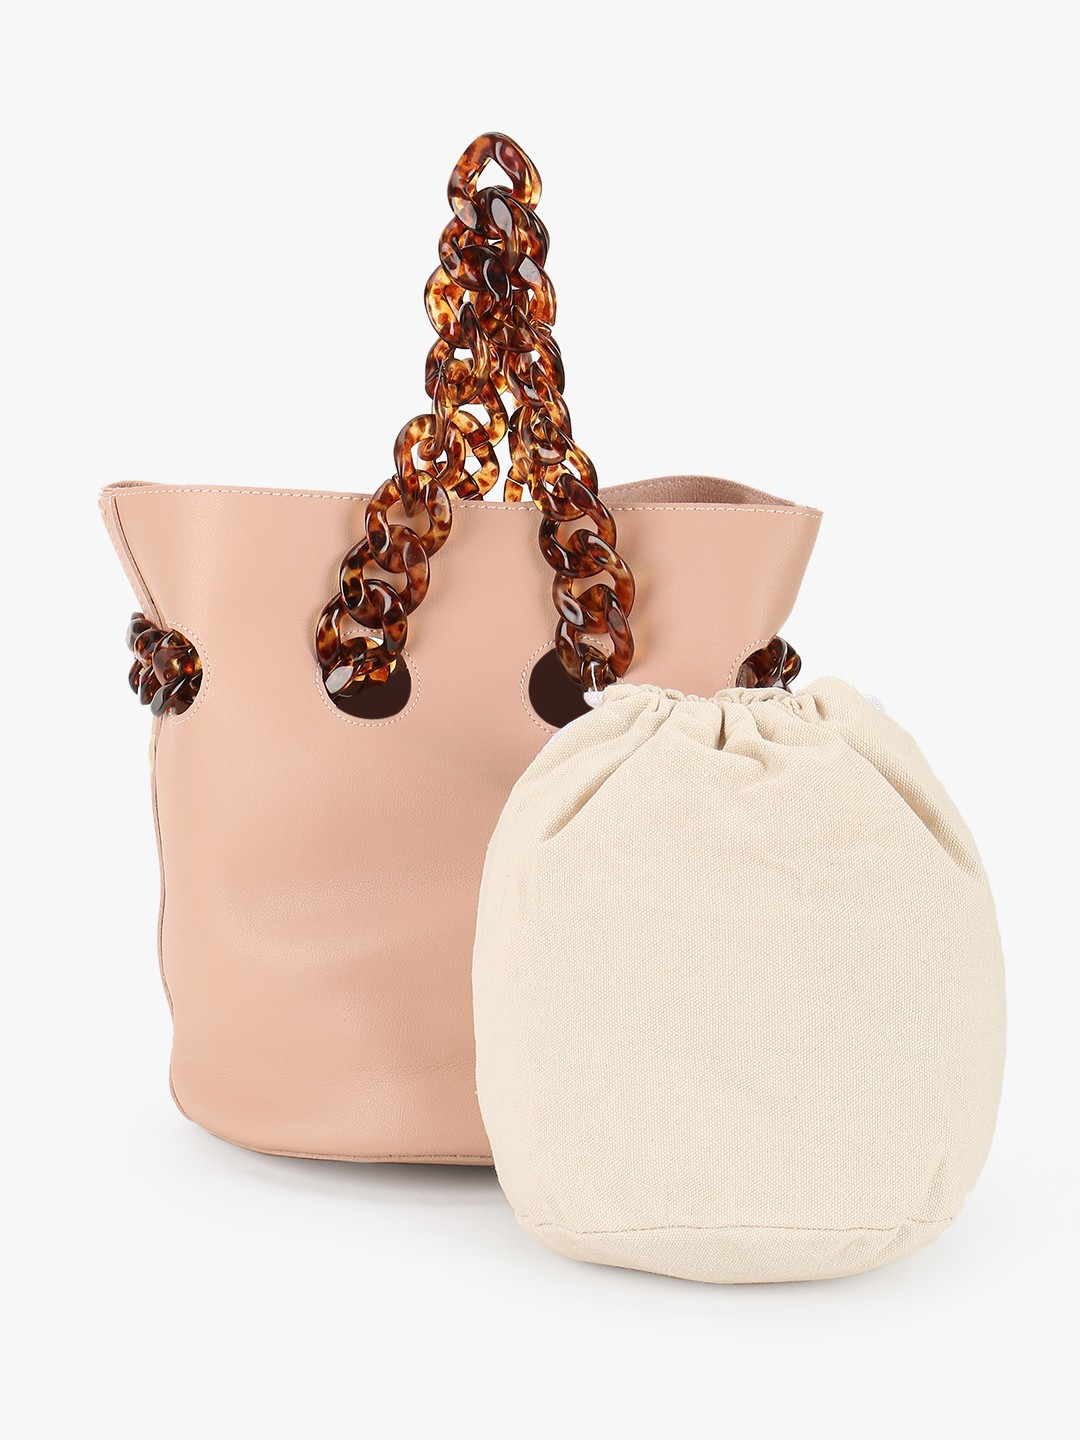 Origami Lily Pink Resin Chain Strap Handbag 1